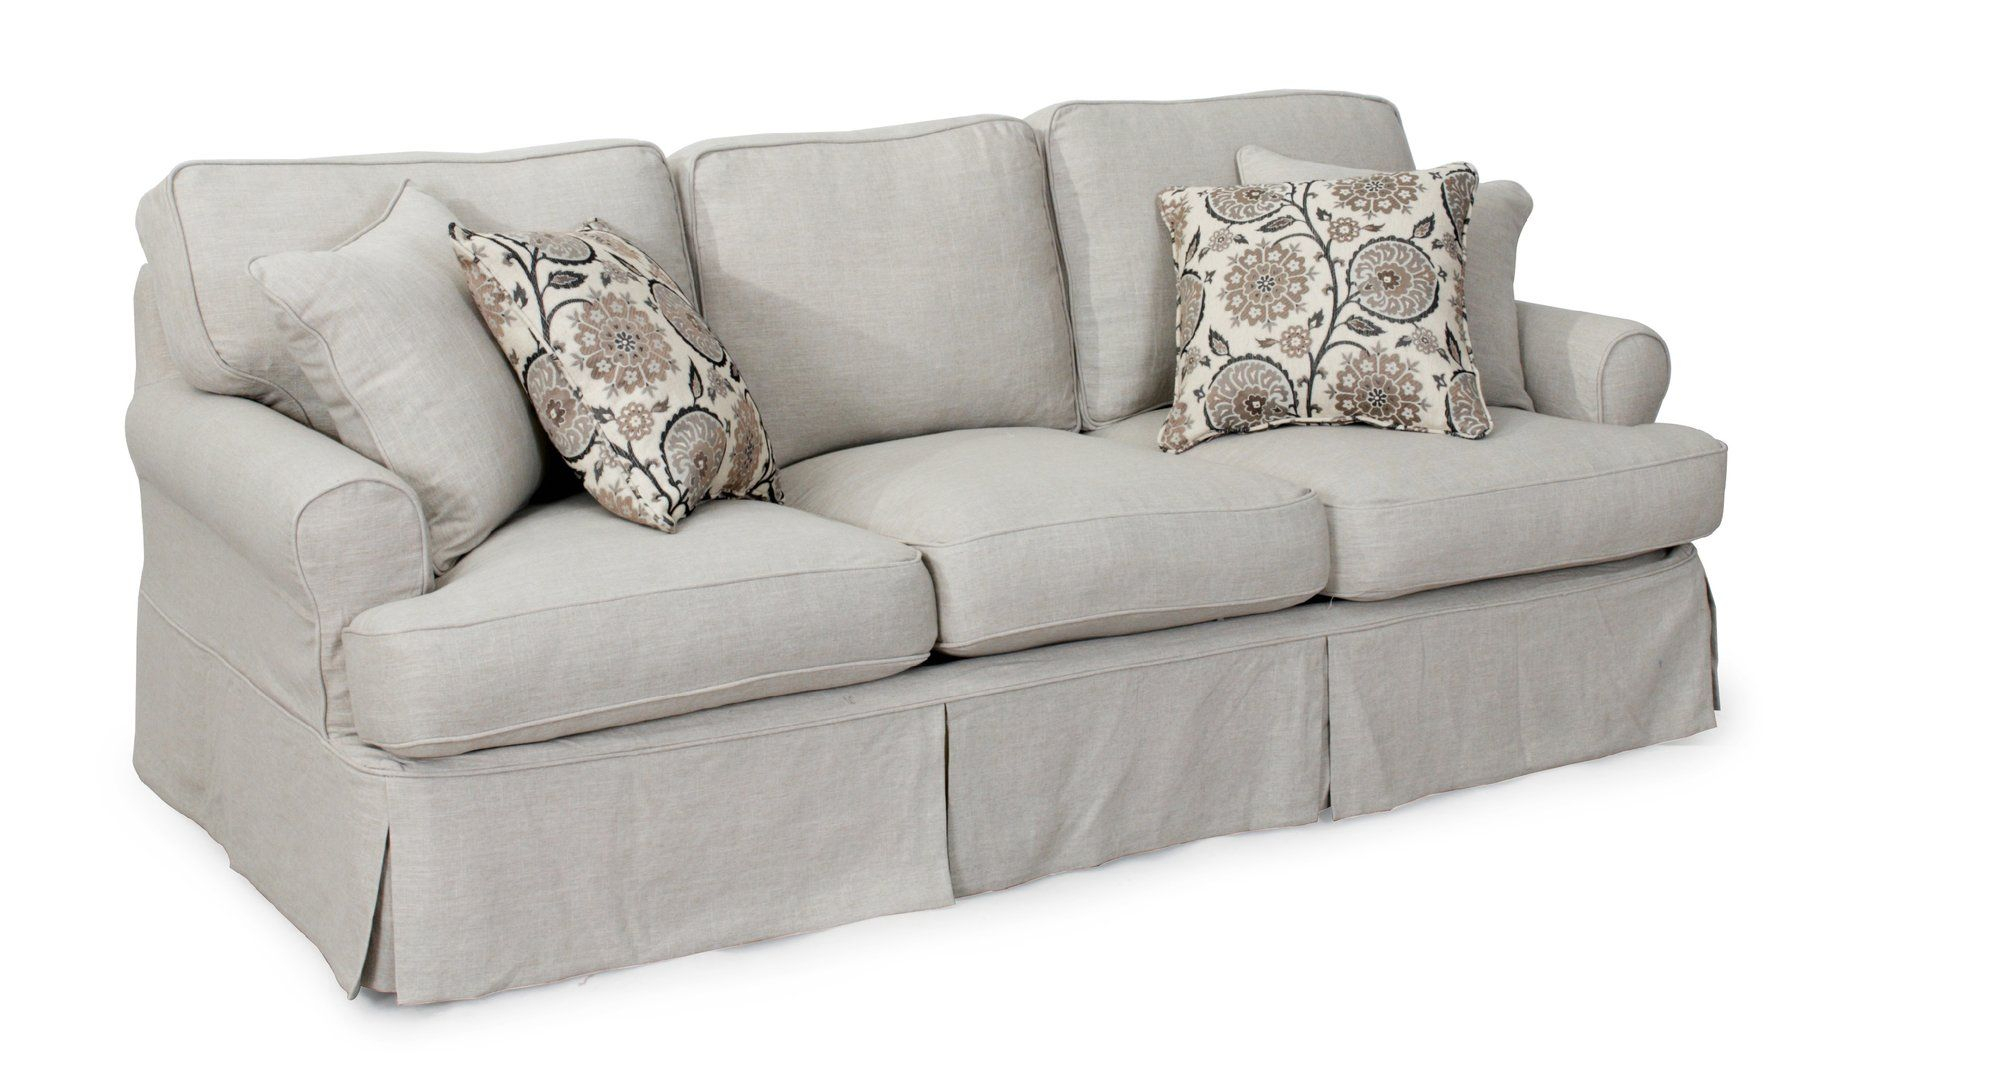 Callie Sofa T Cushion Slipcover Set | Products | Pinterest | Sofa With Callie Sofa Chairs (Image 11 of 20)